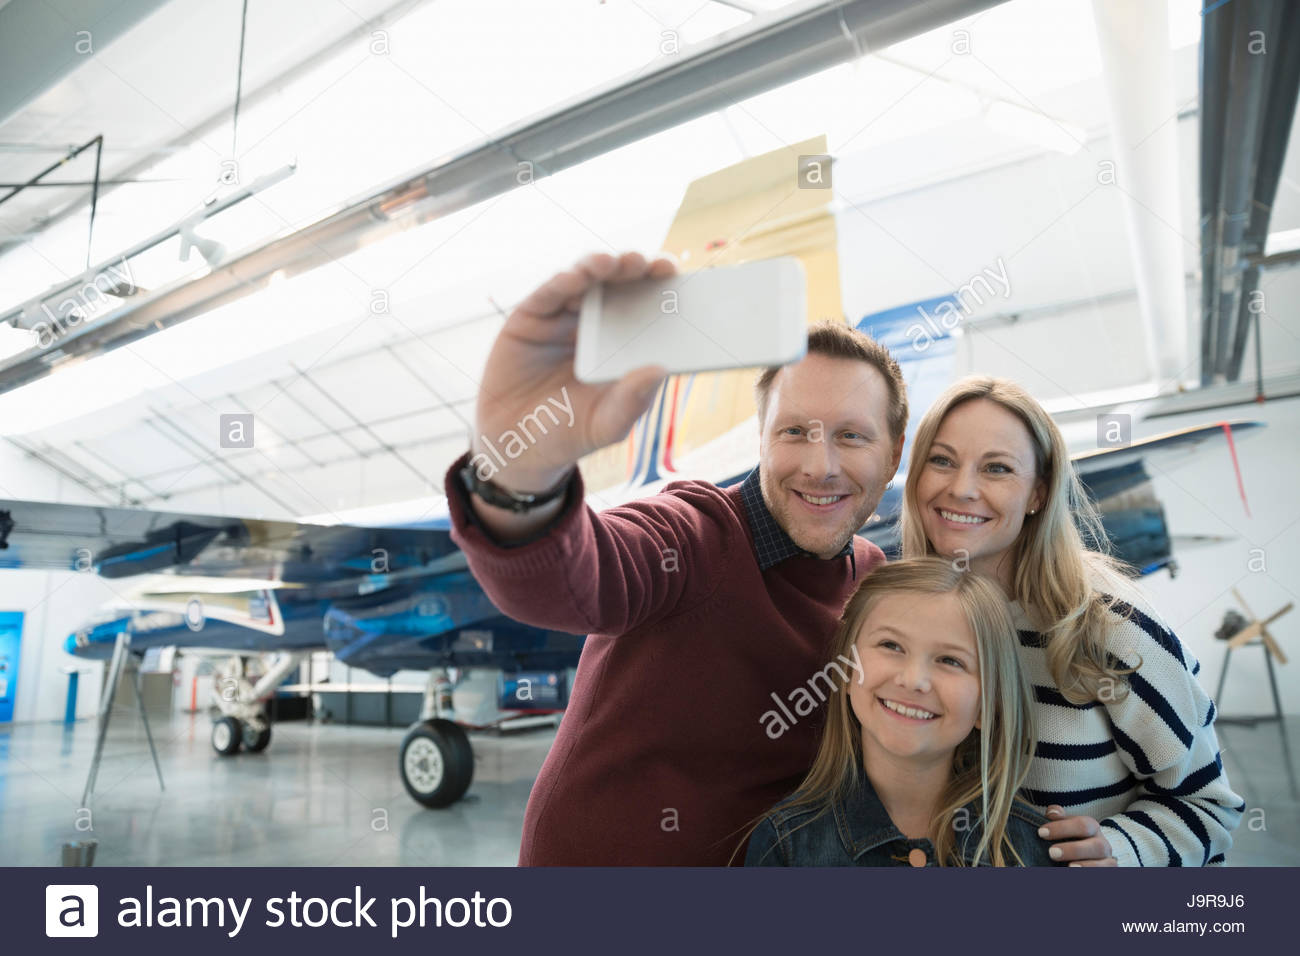 Family with smart phone taking selfie in front of airplane in war museum hangar - Stock Image